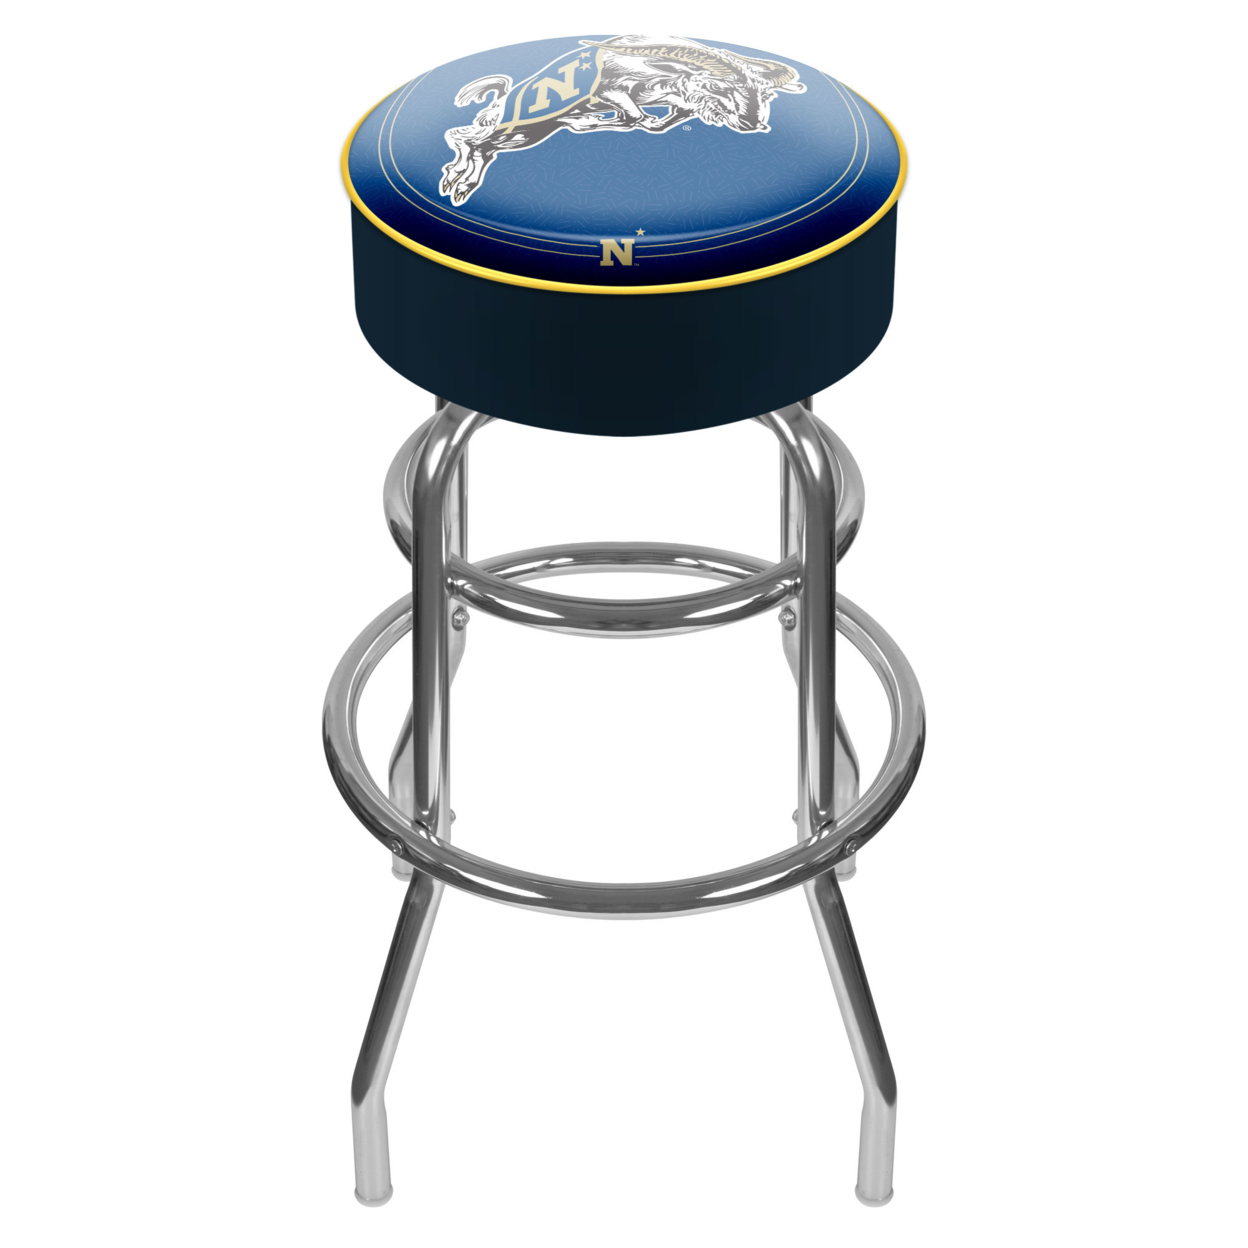 United States Naval Academy Padded Swivel Bar Stool 30 Inches High ...